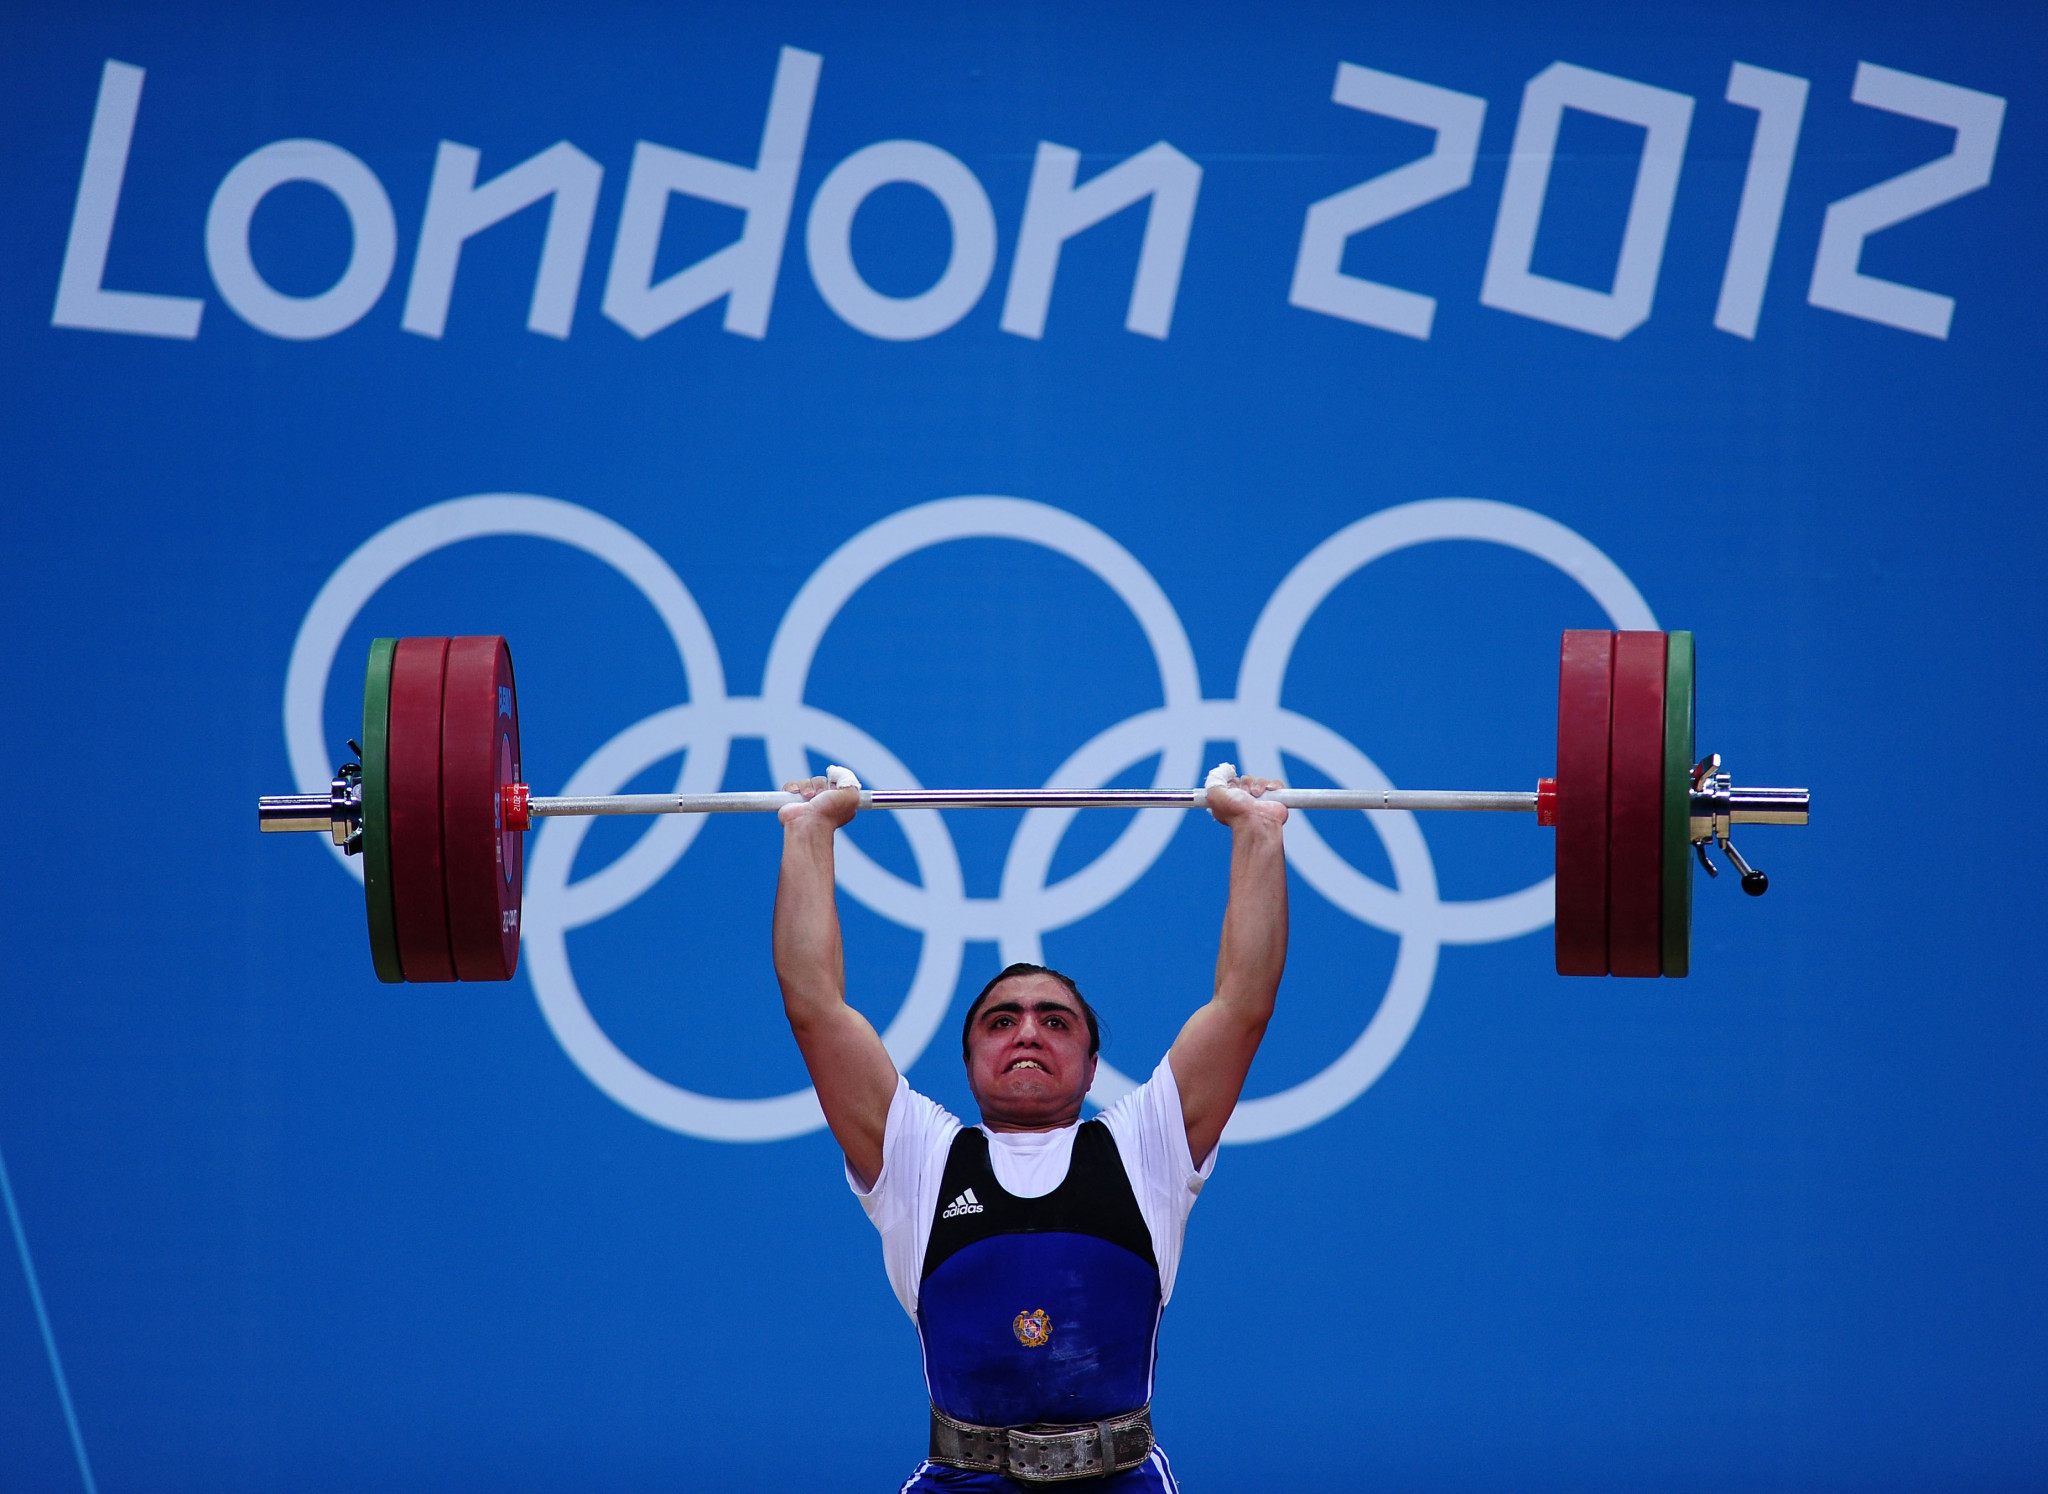 Armenia's Meline Daluzyan has been disqualified from the women's 69kg weightlifting event at the London 2012 Olympic Games ©Getty Images